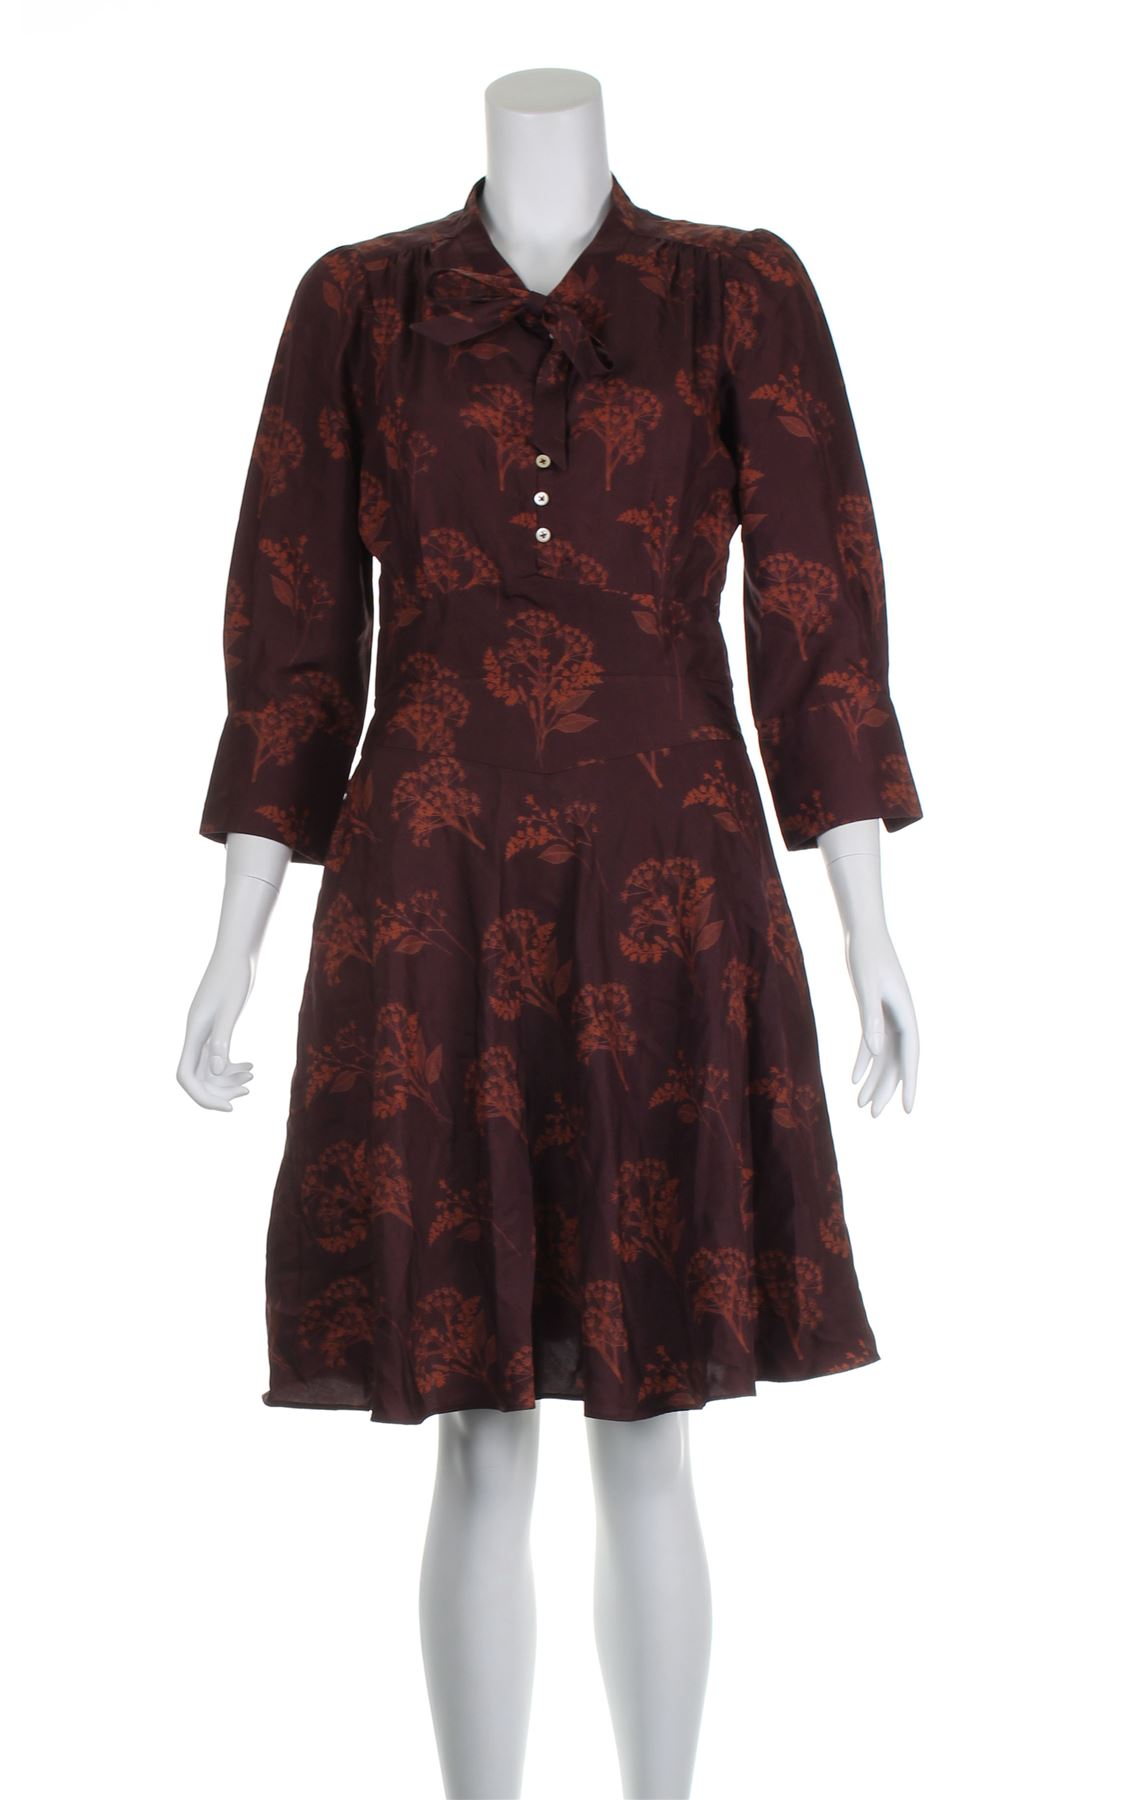 Details about MARGARET HOWELL Burgundy Silk Casual Dress ef9299b9a